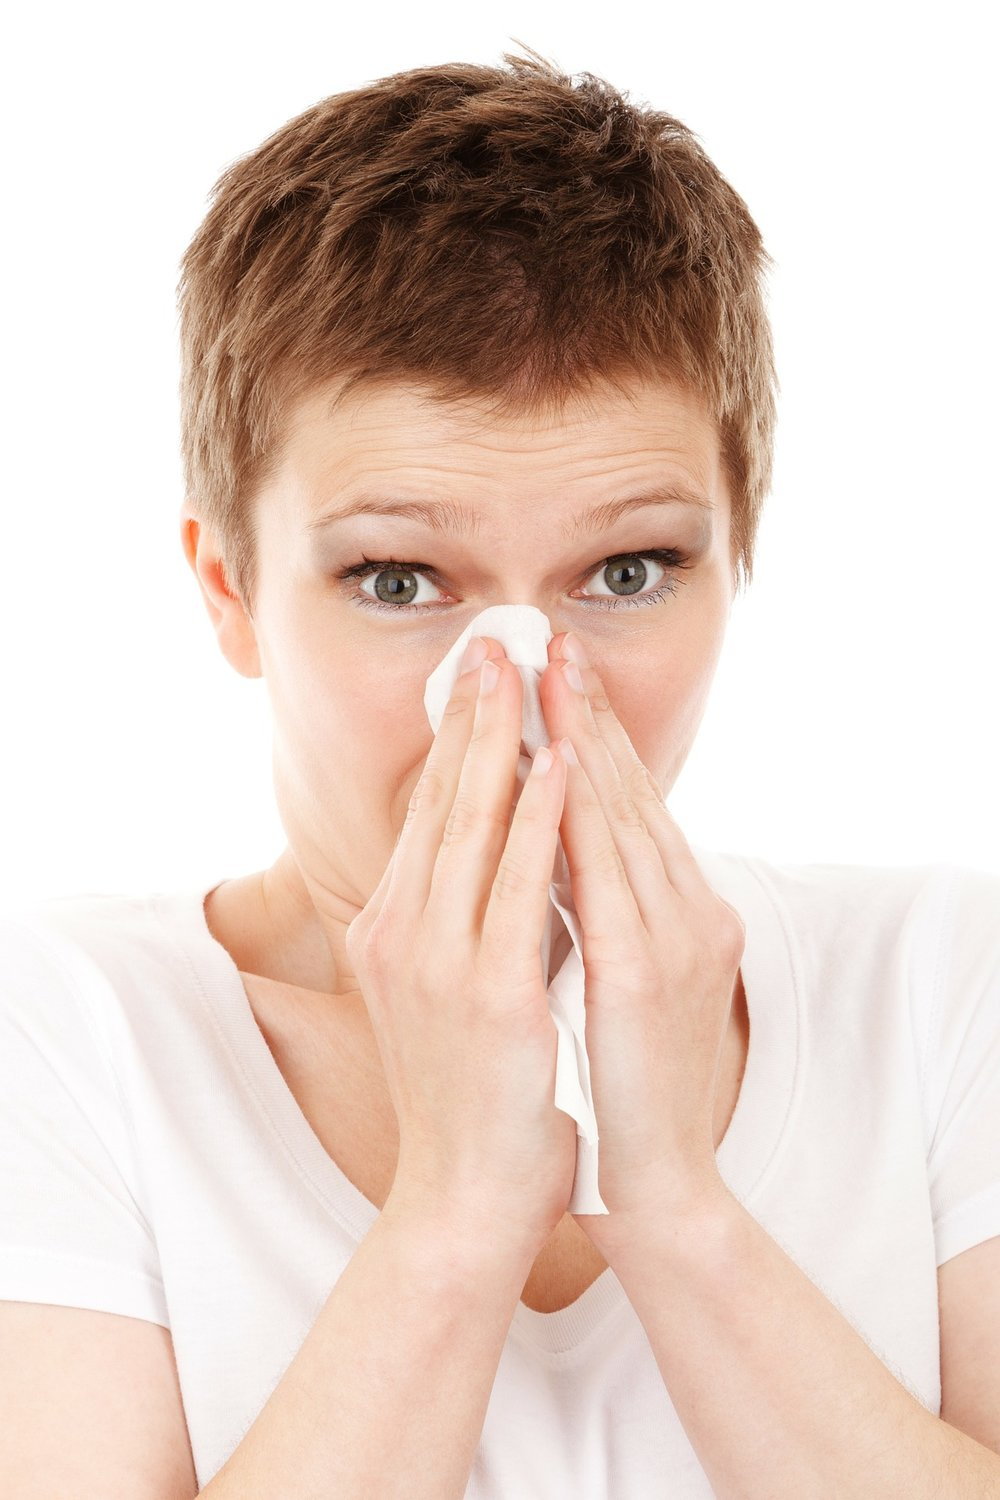 a gentler alternative to treating and preventing chronic sinusitis